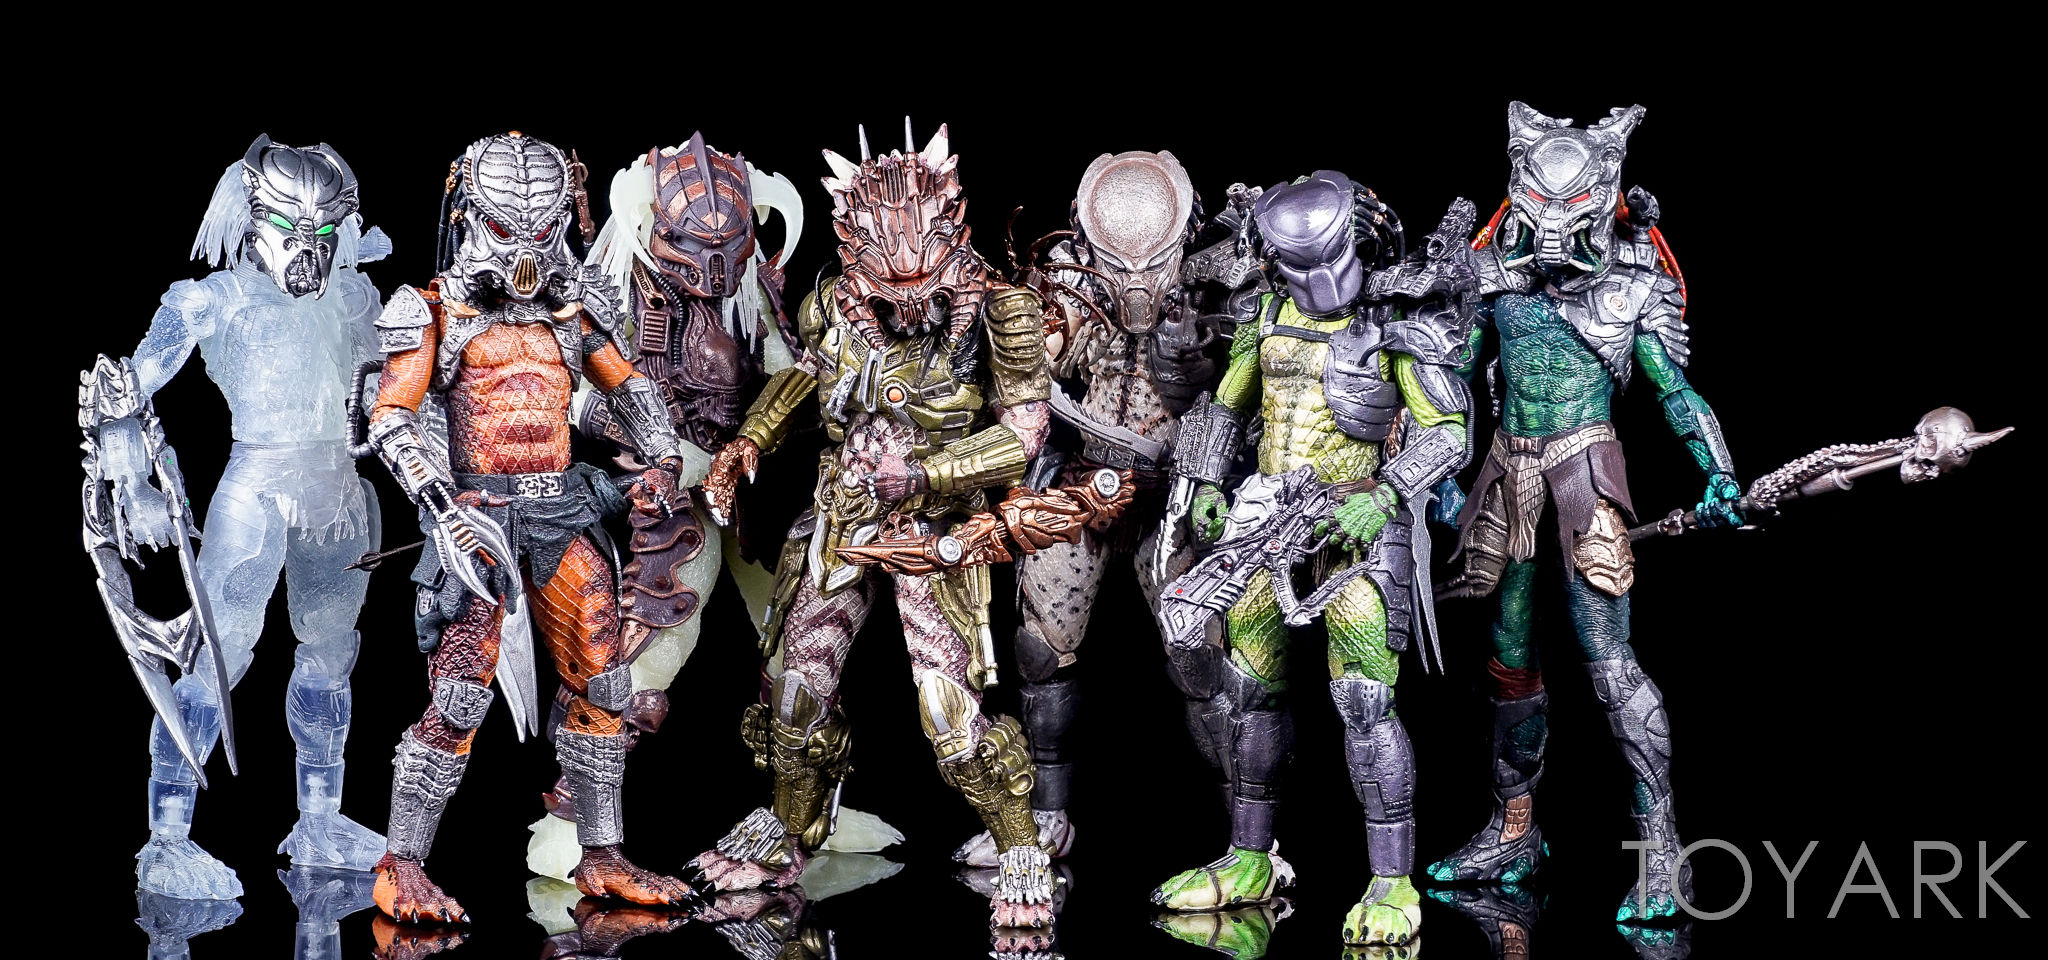 http://news.toyark.com/wp-content/uploads/sites/4/2016/10/Predator-Series-16-NECA-129.jpg